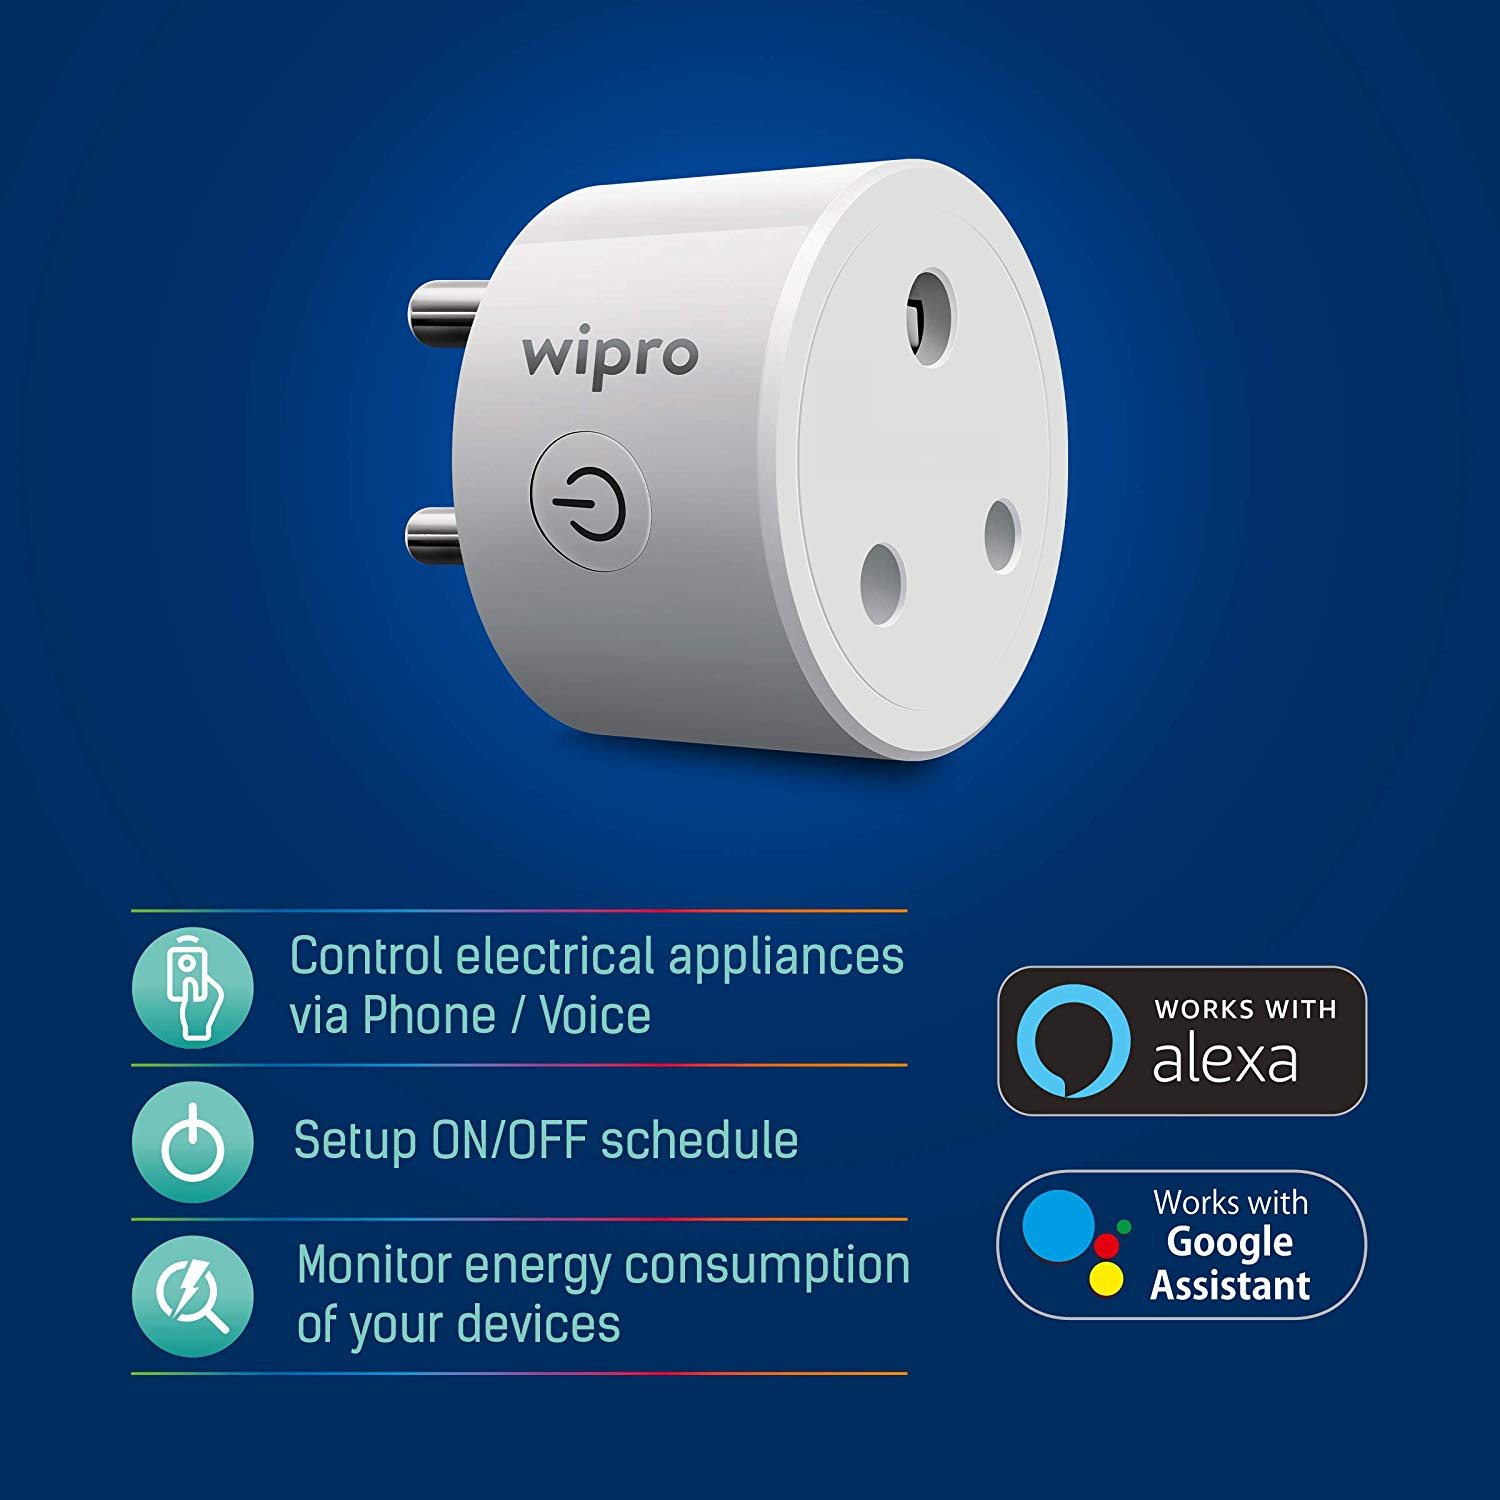 Wipro 10 Amp Smart Plug(With Alexa Control)